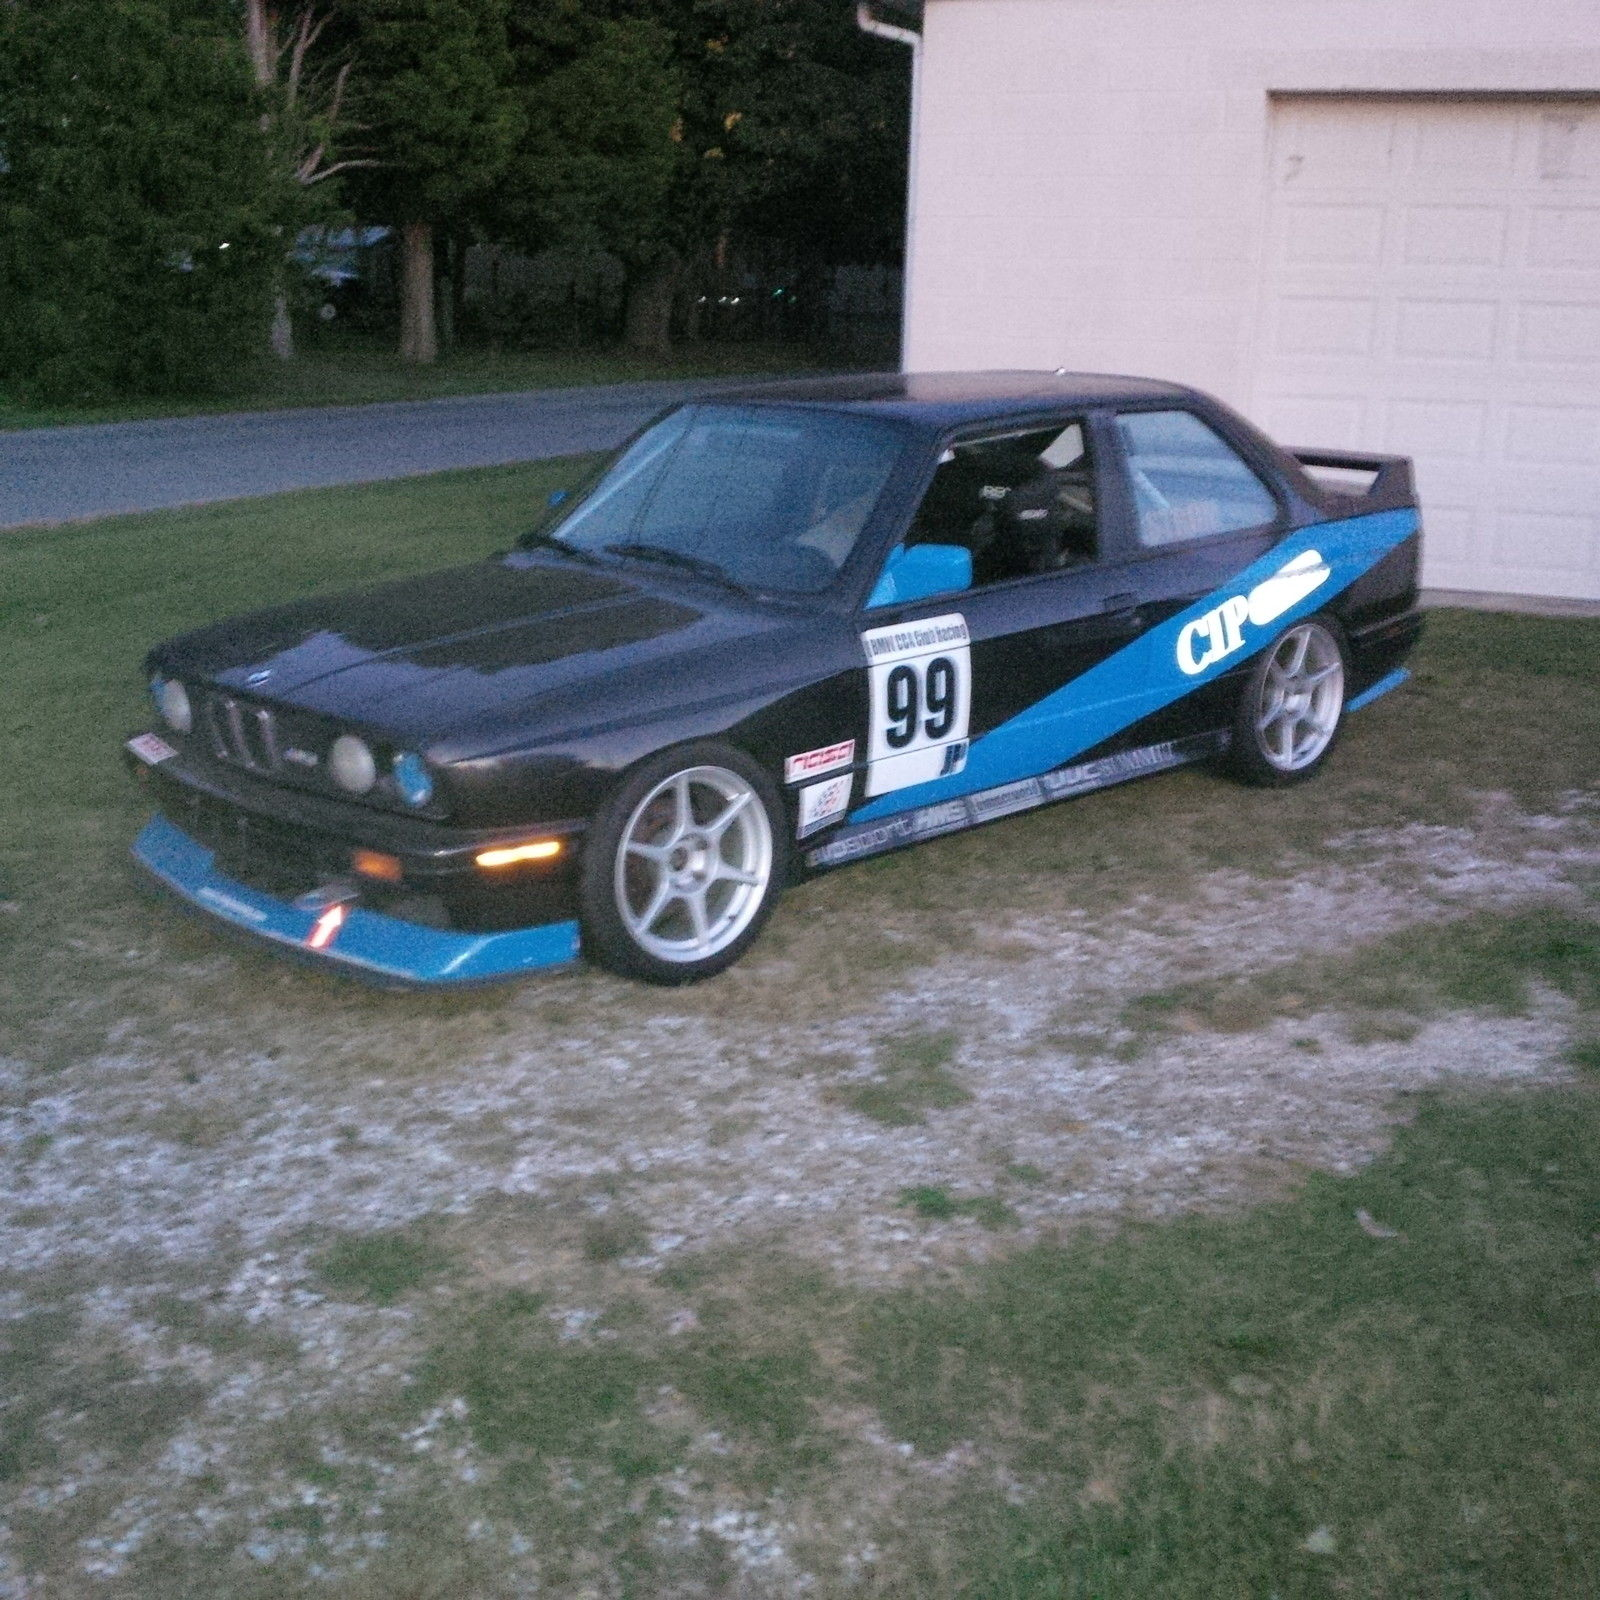 1987 BMW M3 Race car E30 M3 S14 S54 - Classic BMW M3 1987 for sale